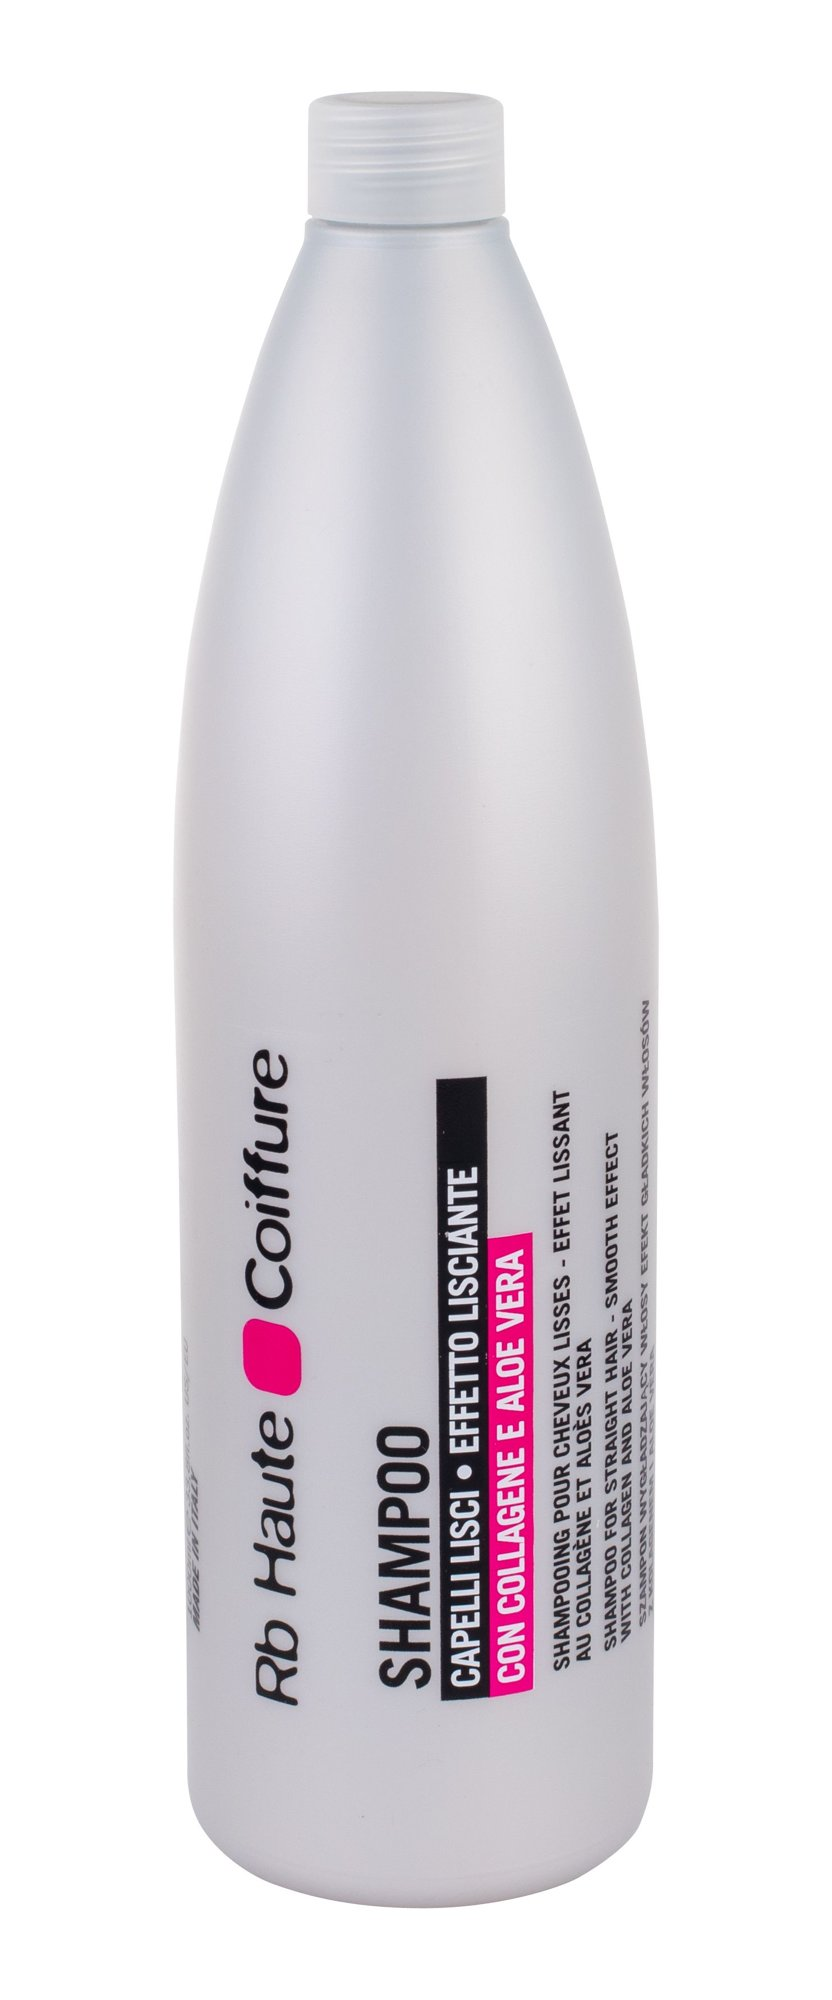 Renée Blanche Rb Haute Coiffure Cosmetic 1000ml  For Straight Hair